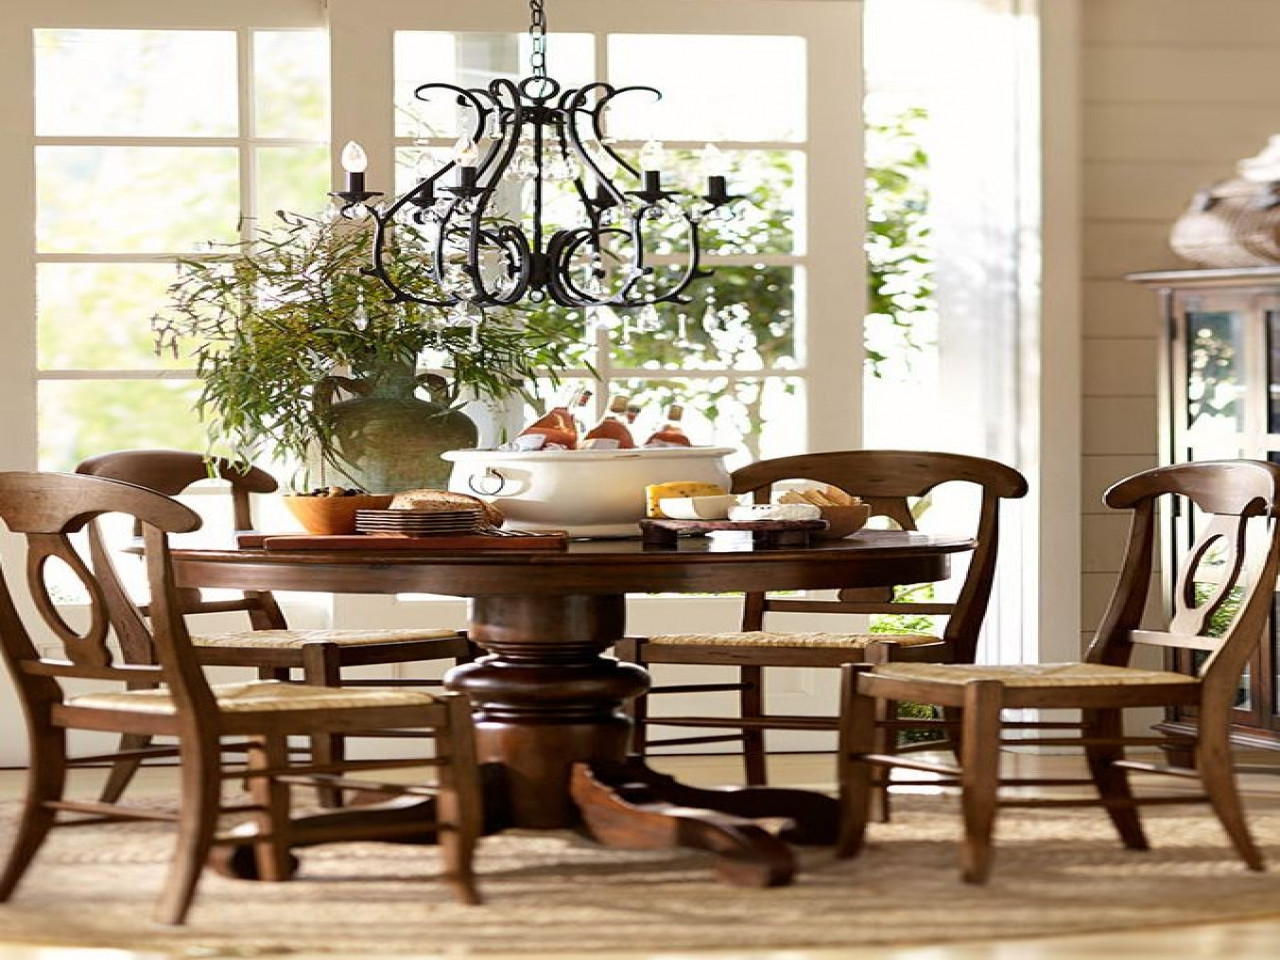 Best ideas about Pottery Barn Dining Room . Save or Pin Pottery barn style living room pottery barn dining chairs Now.